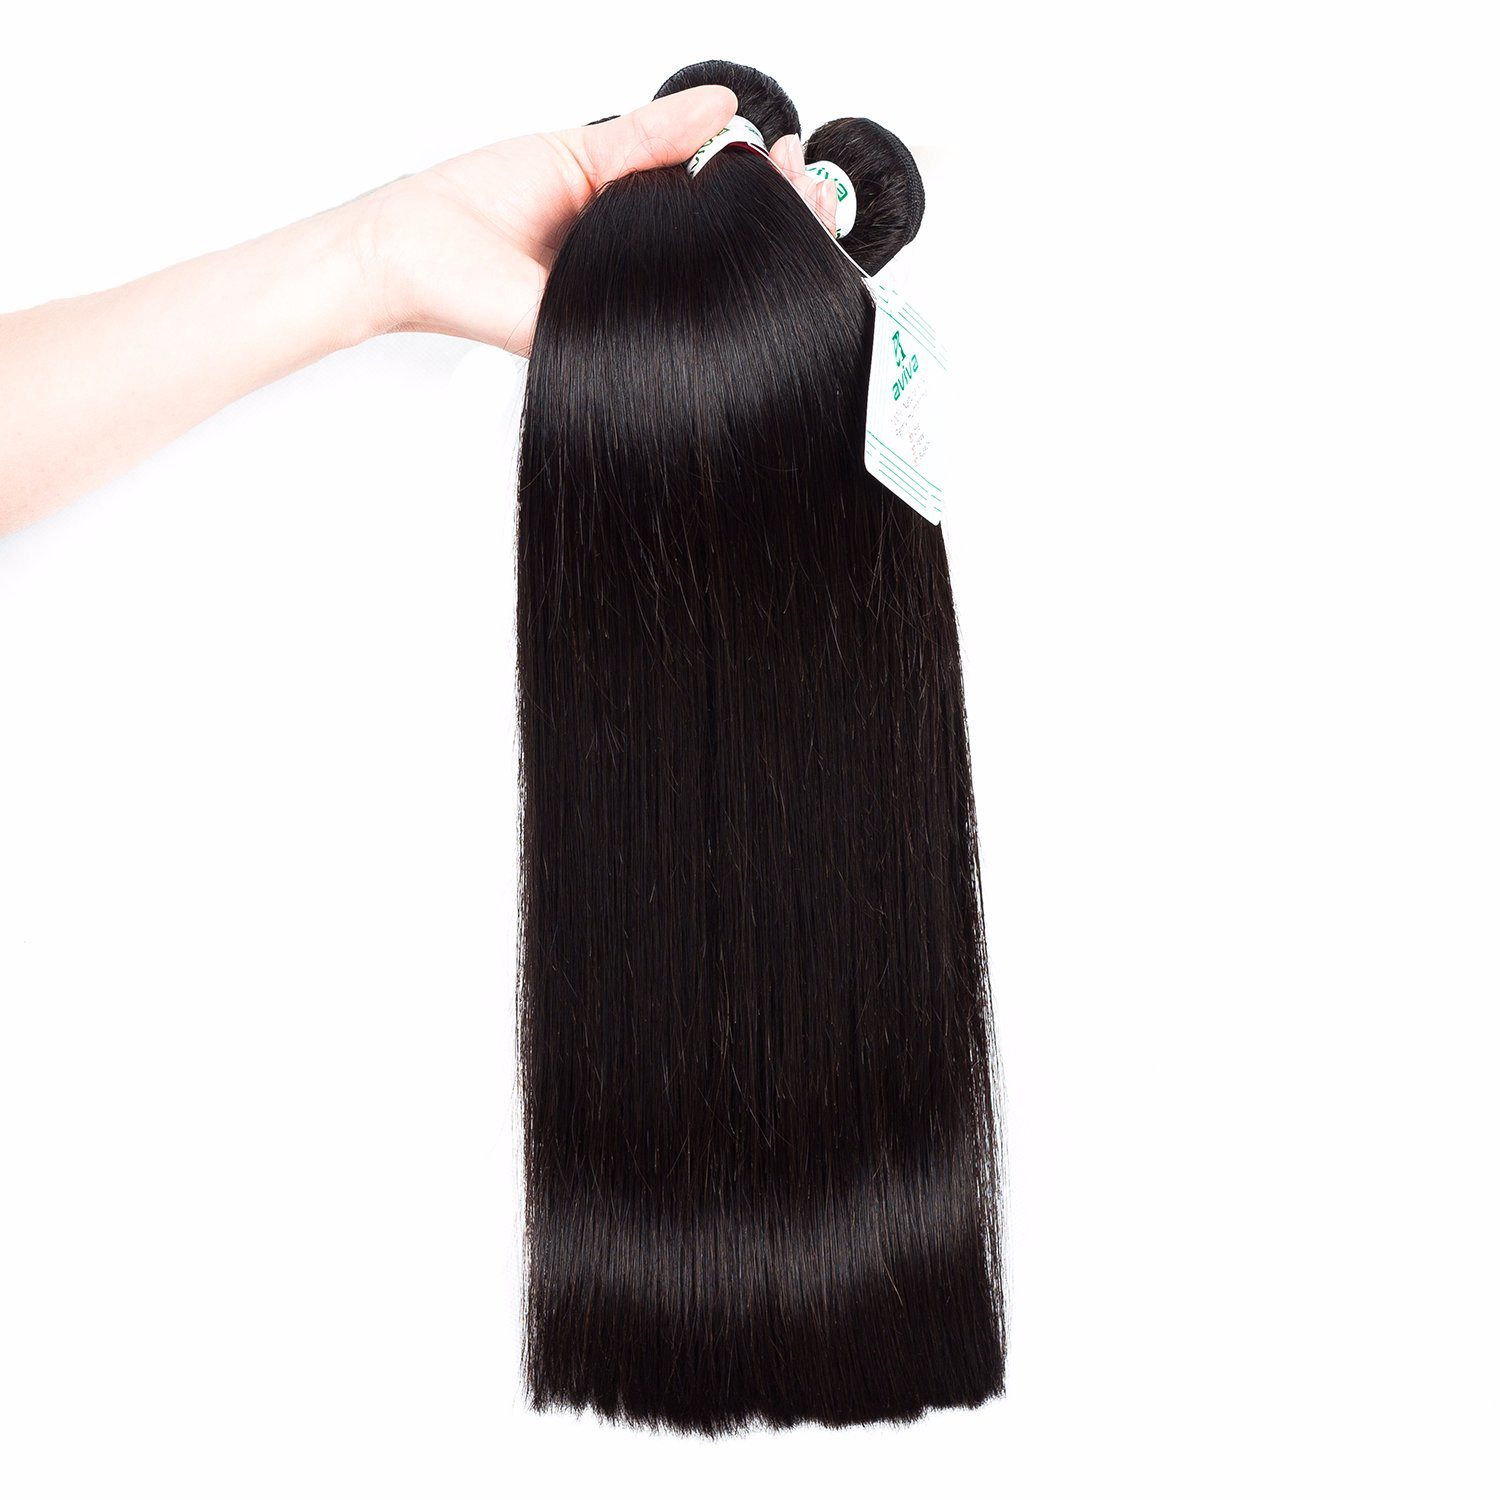 China Wholesale Brazilian Virgin Hair Remy Human Hair Weaving